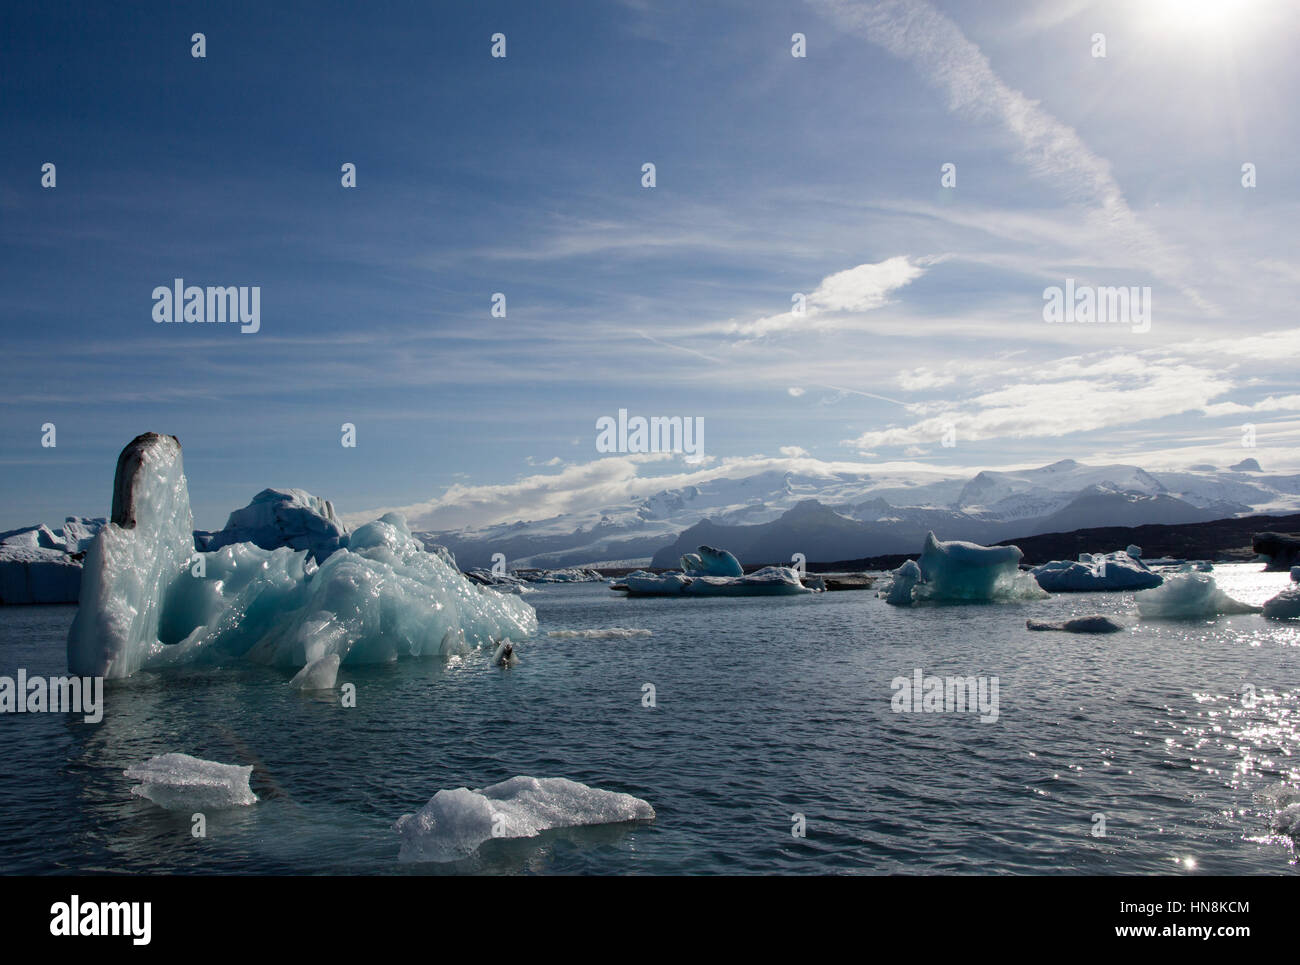 An iceberg that has just turned itself over shows it's turquoise blue underside on Jokulsarlon glacial lagoon - Stock Image